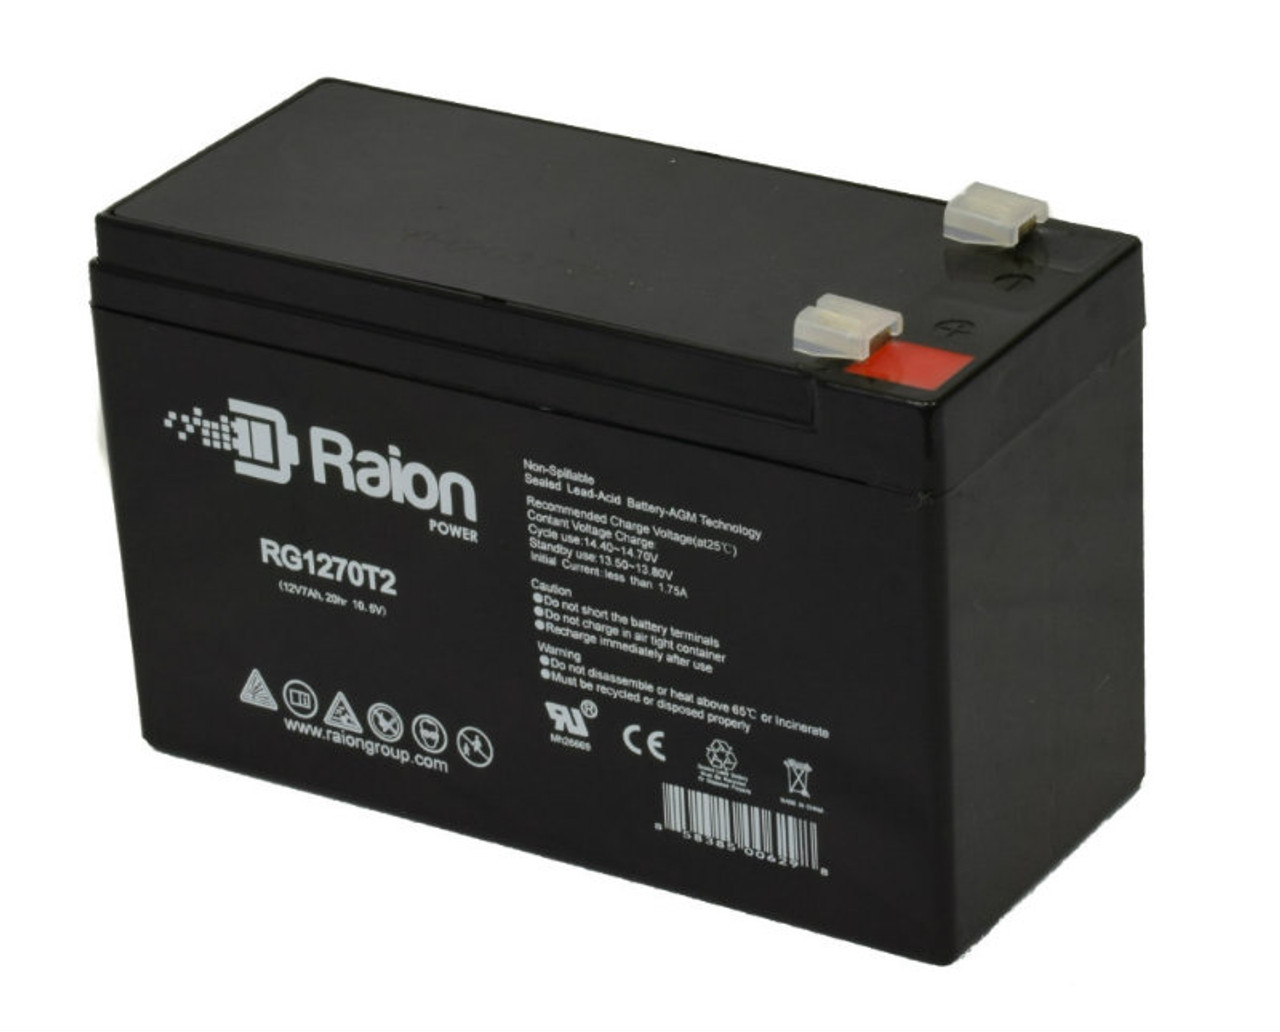 Raion Power RG1270T1 Replacement Battery for SigmasTek SP12-7